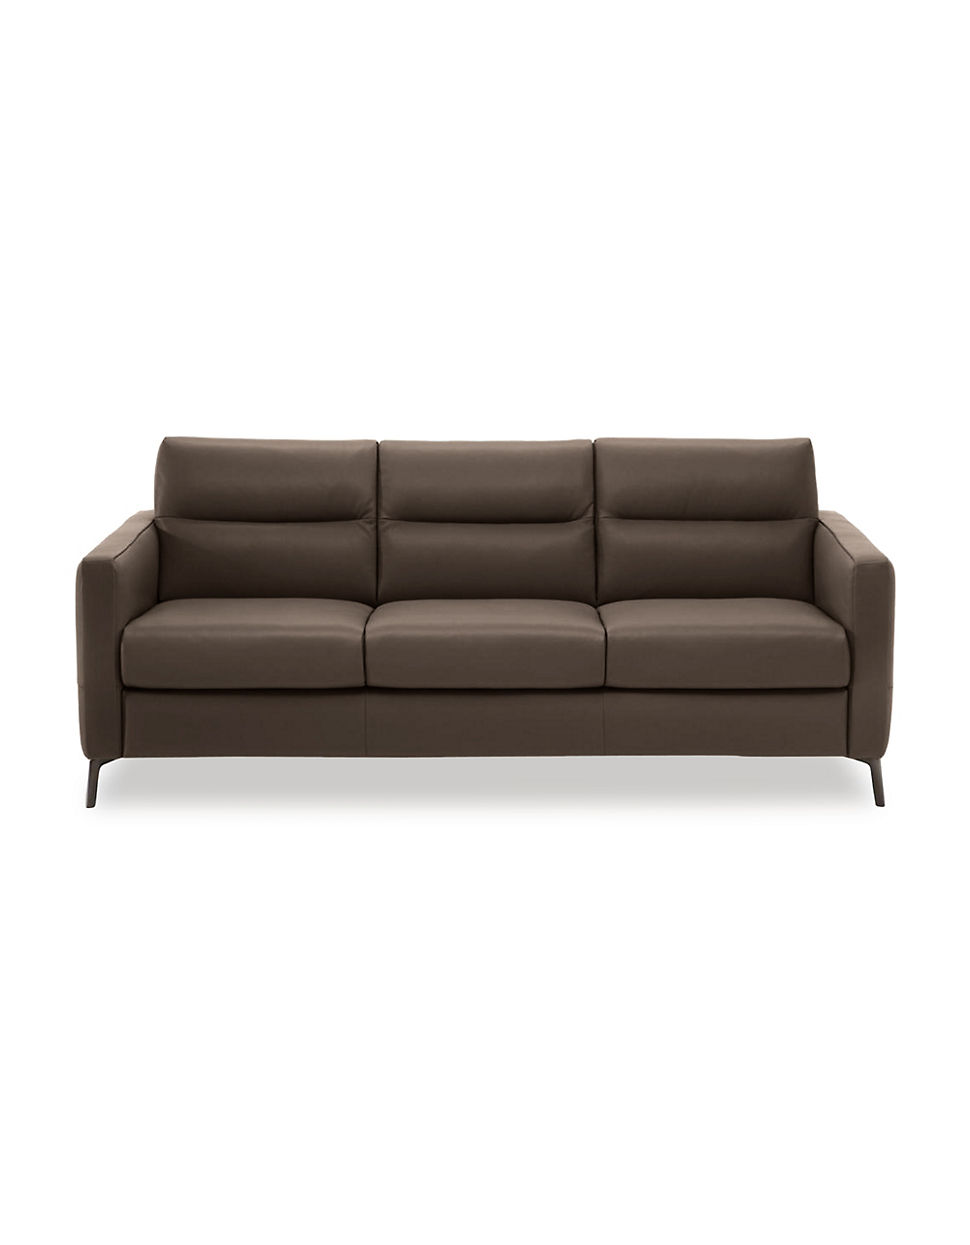 sofas sectionals modern concepts natuzzi parts by sectional large recliner size sofa of couch leather interior